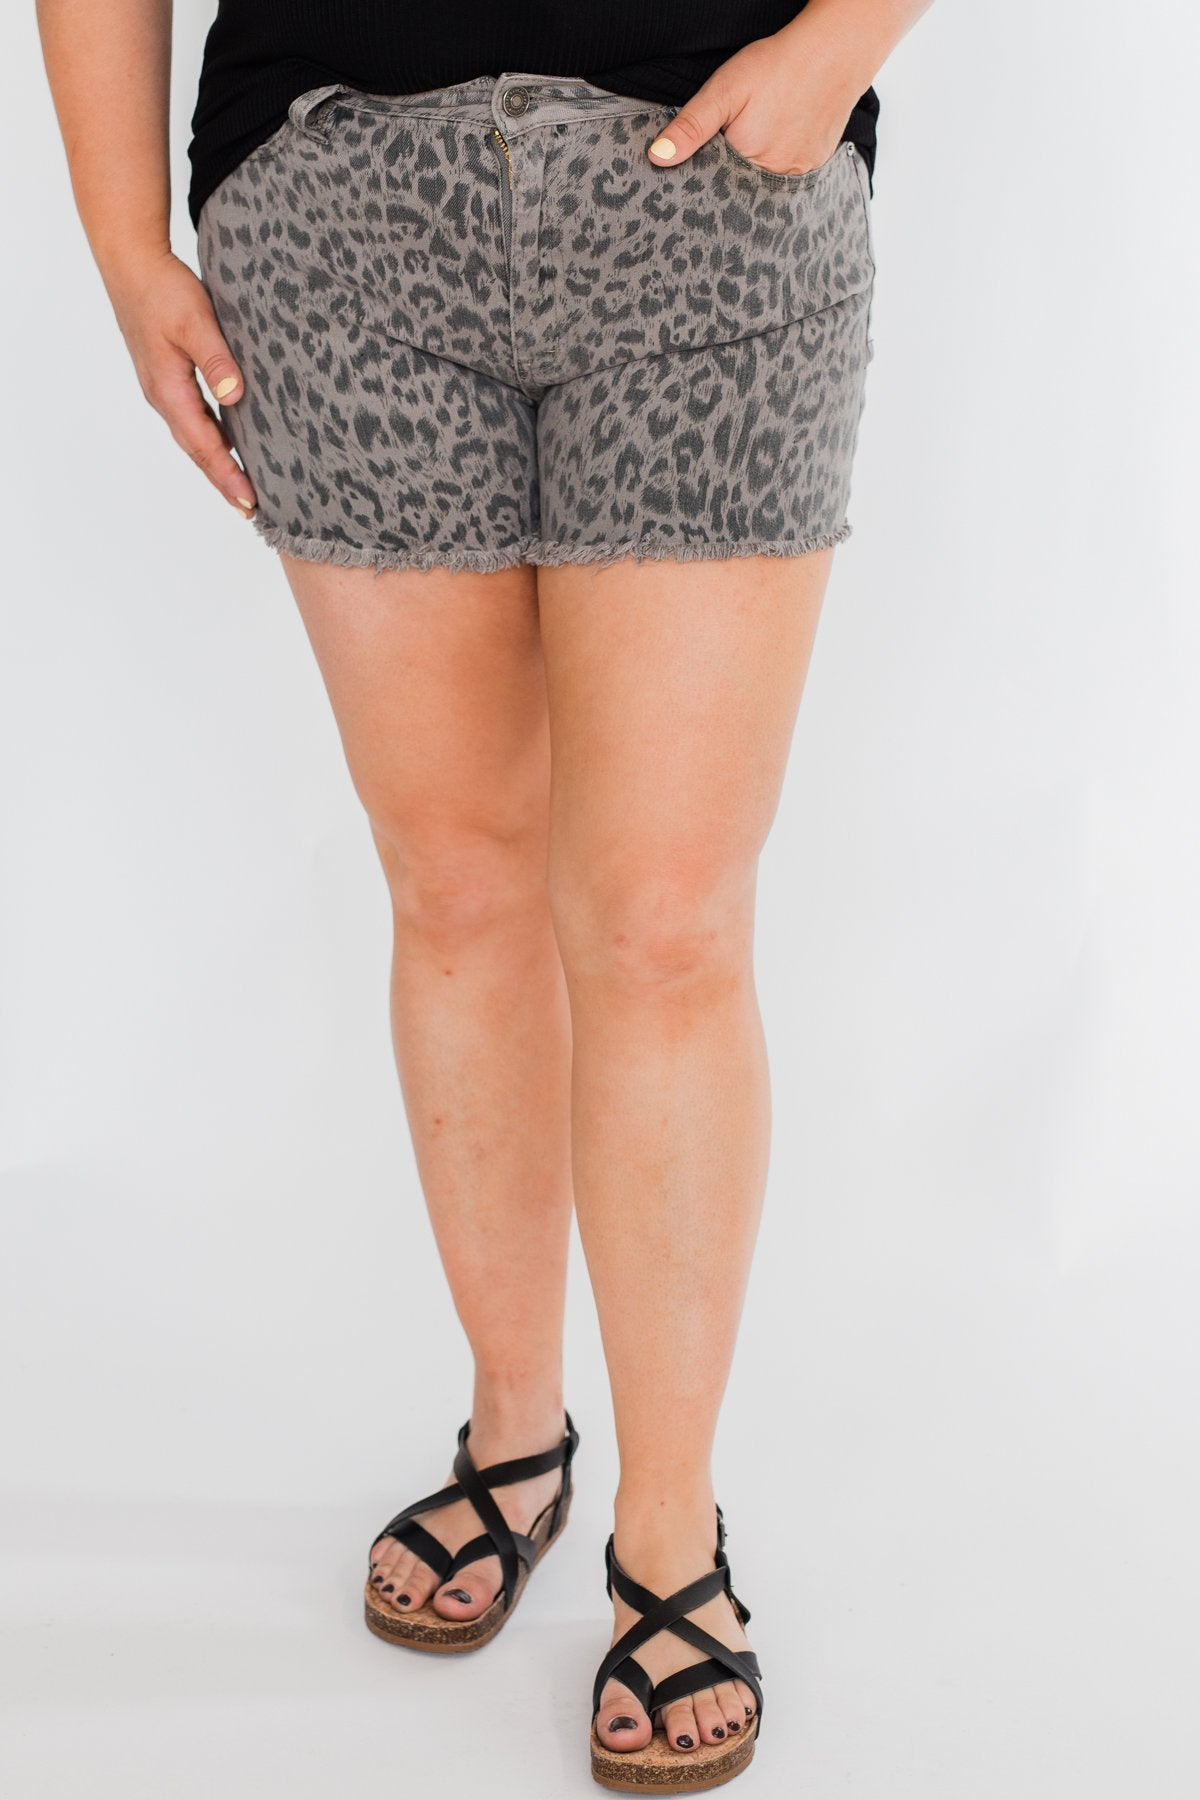 KanCan Frayed Hem Shorts- Grey Leopard Wash